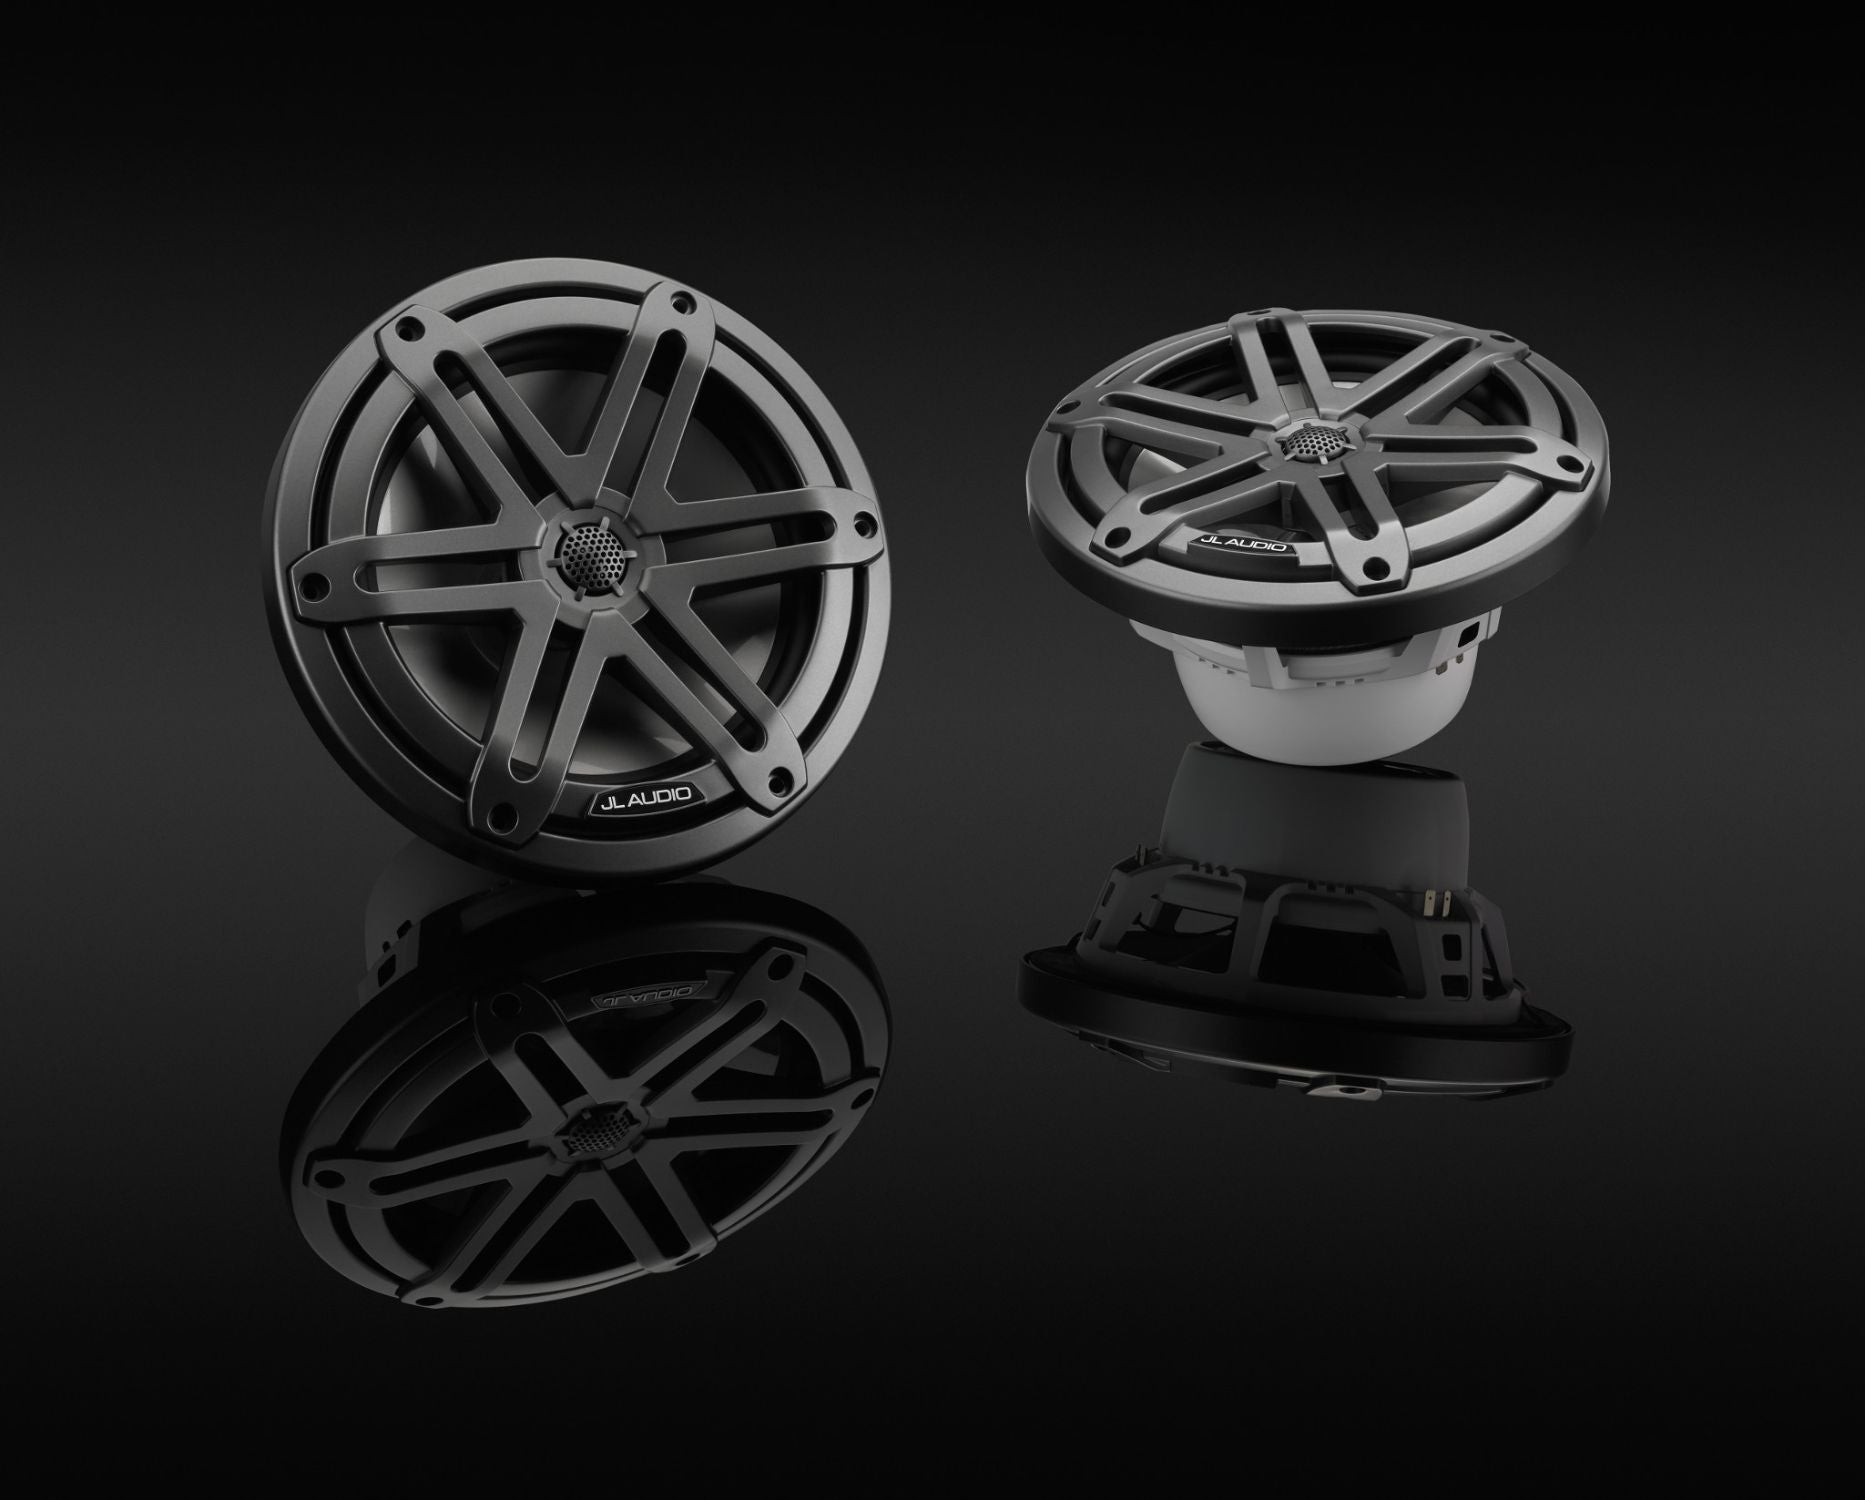 Pair of M3-770X-S-Gm Coaxial Speaker on Black